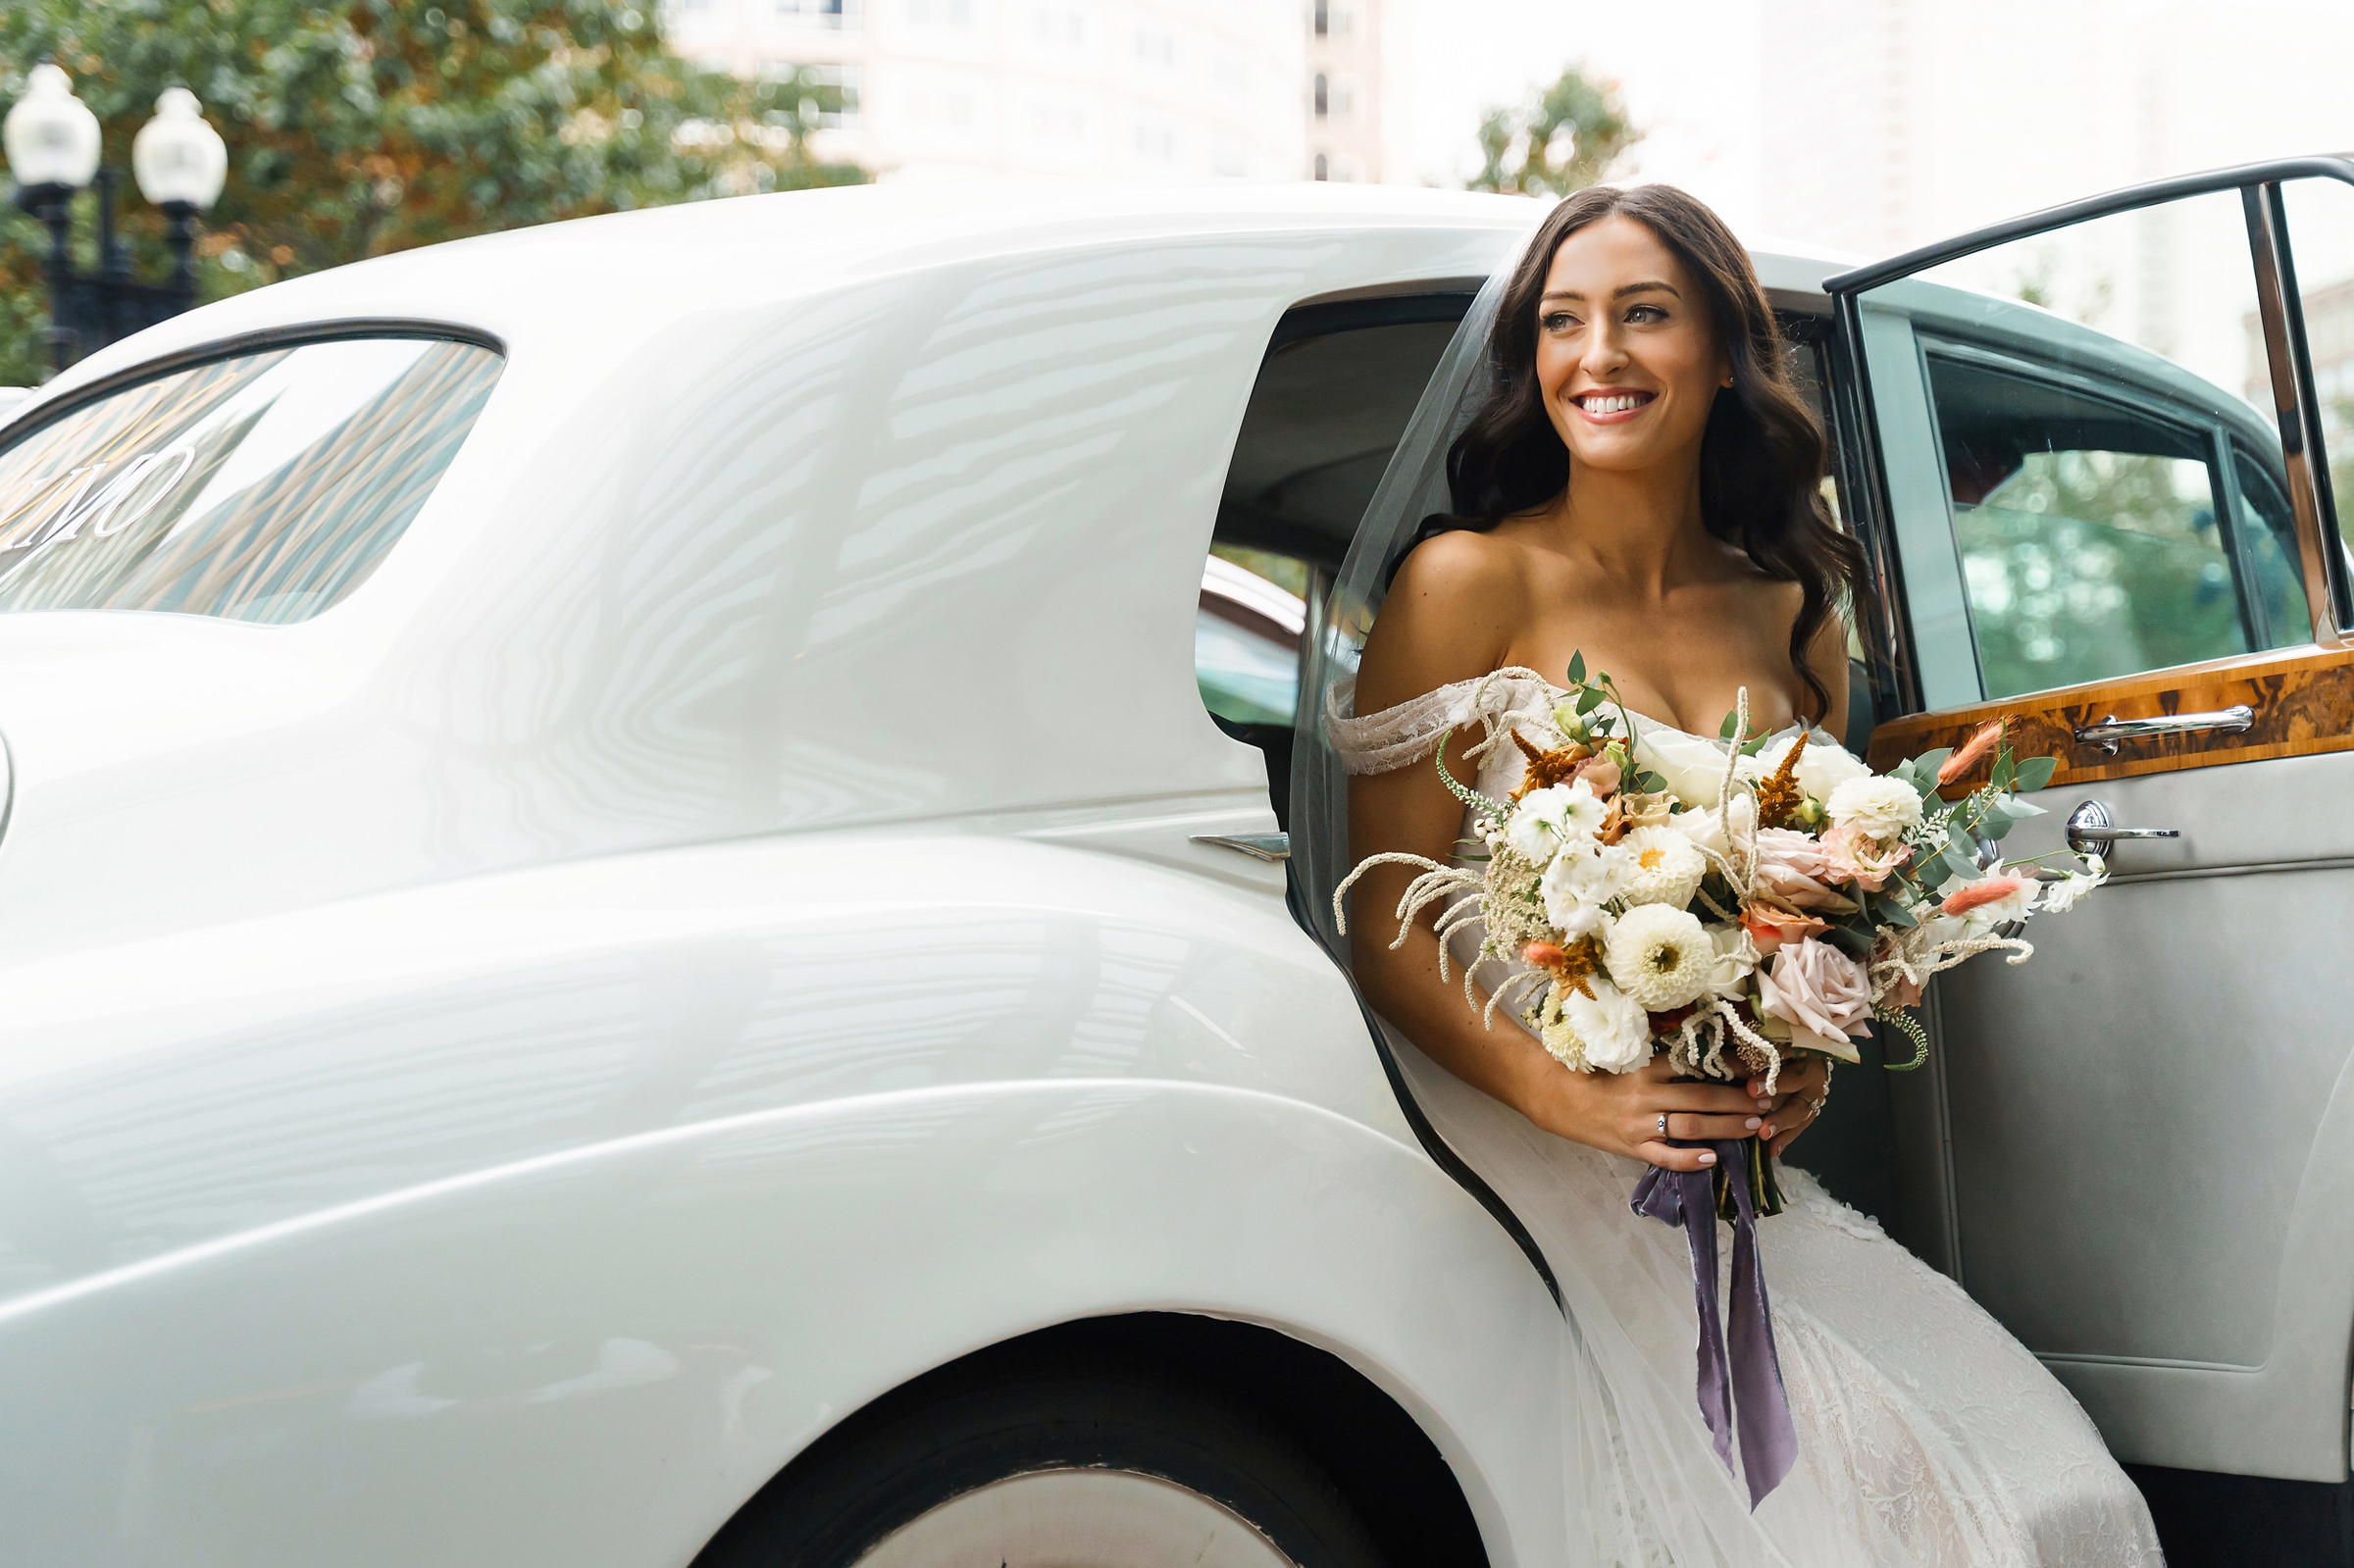 Bride getting out of white limo by Alex Gordias - Cape Cod, MA